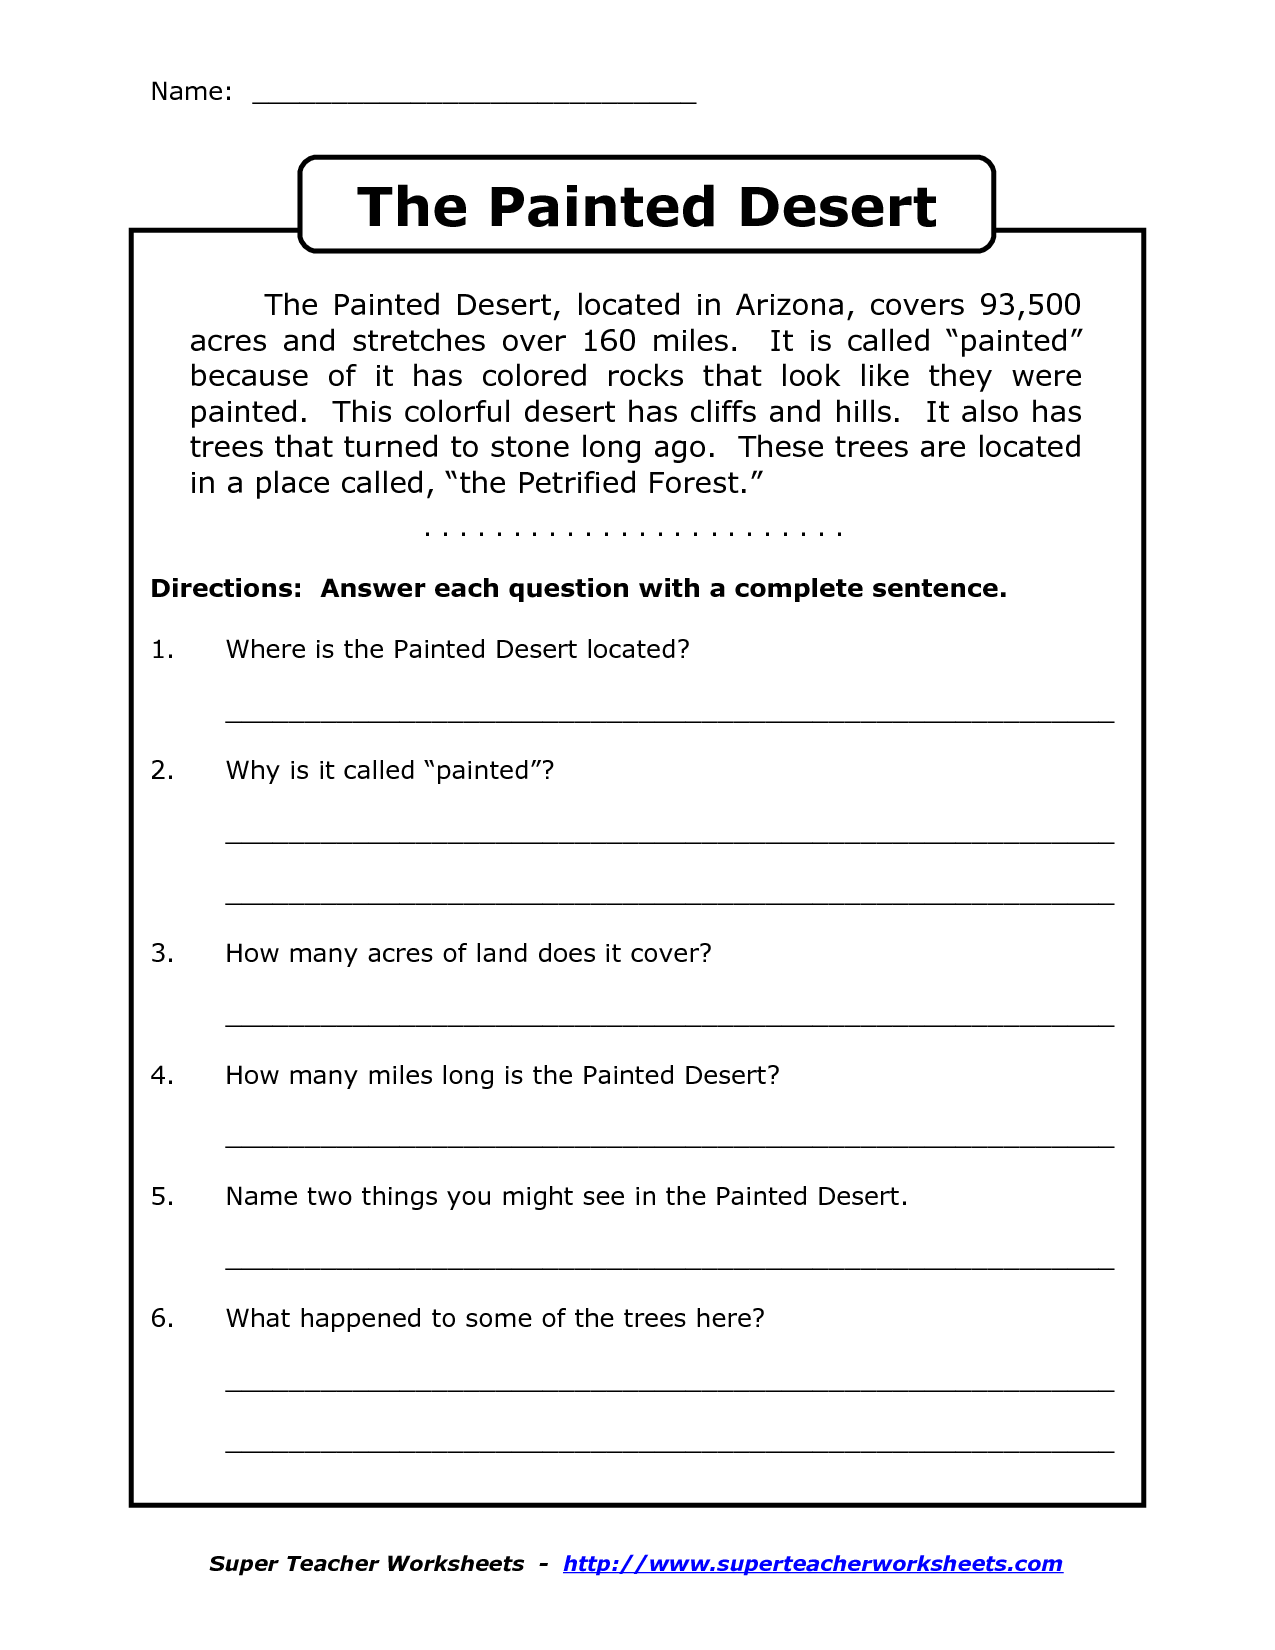 Reading Worksheets for 4th Grade | Reading Comprehension ...